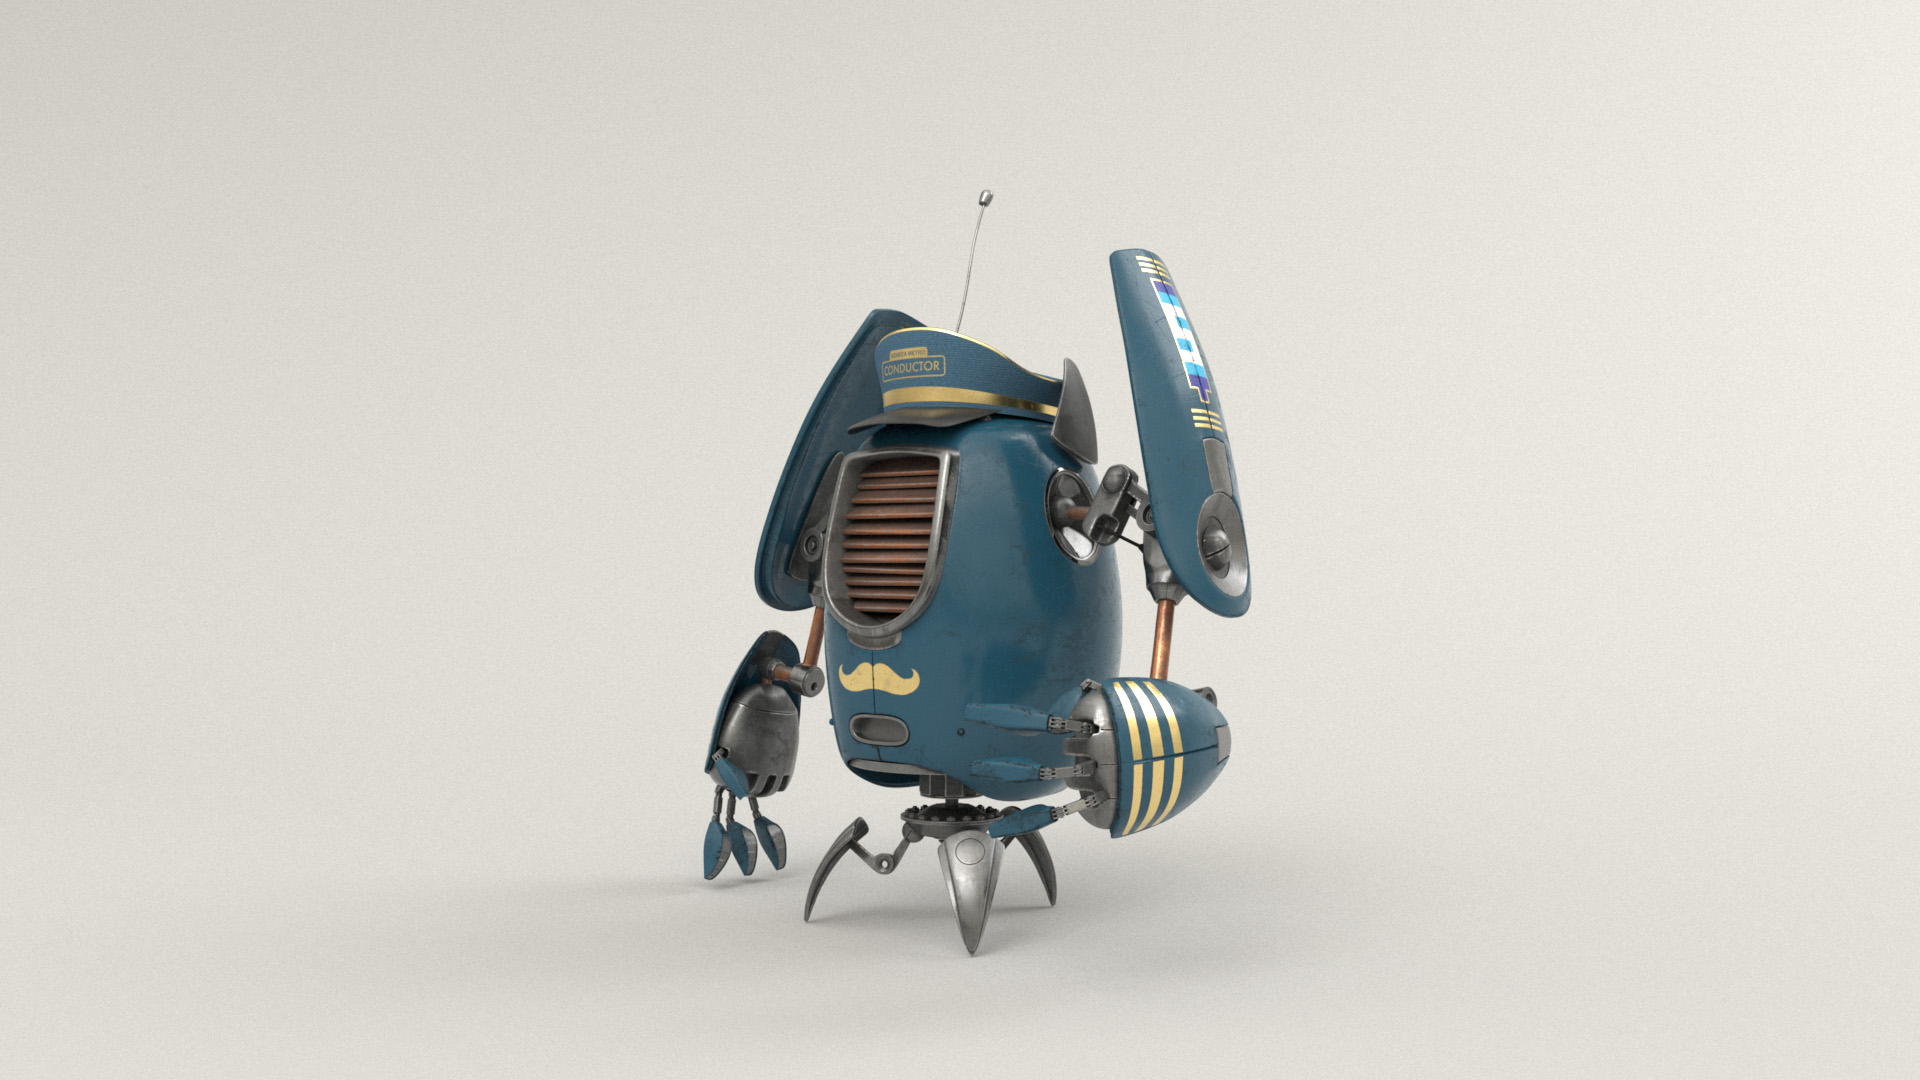 Figure 20: Conductor robot with a blue and gold color scheme and a hat!